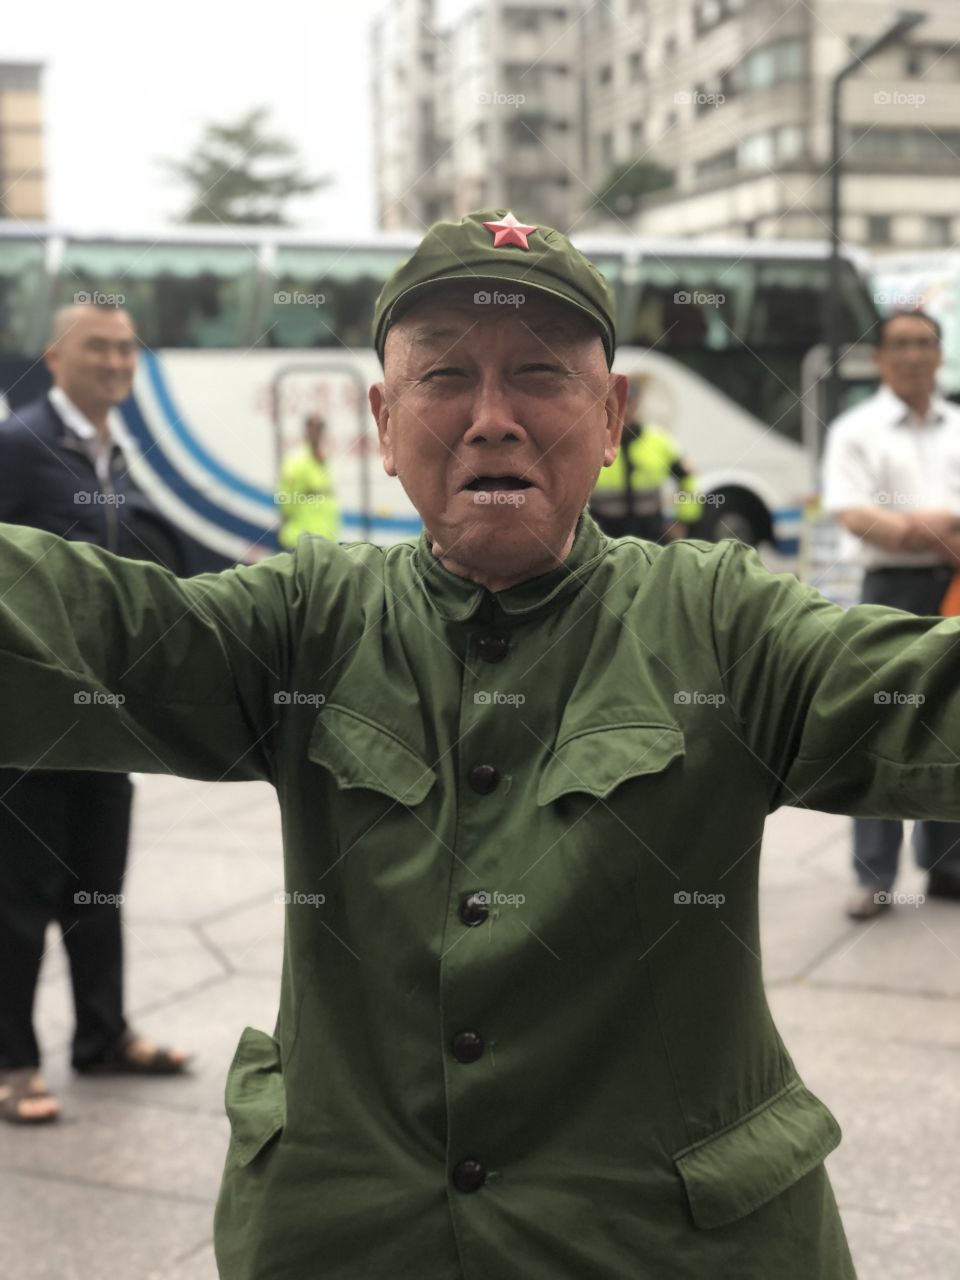 Activist in Taiwan promoting Chinnese rule